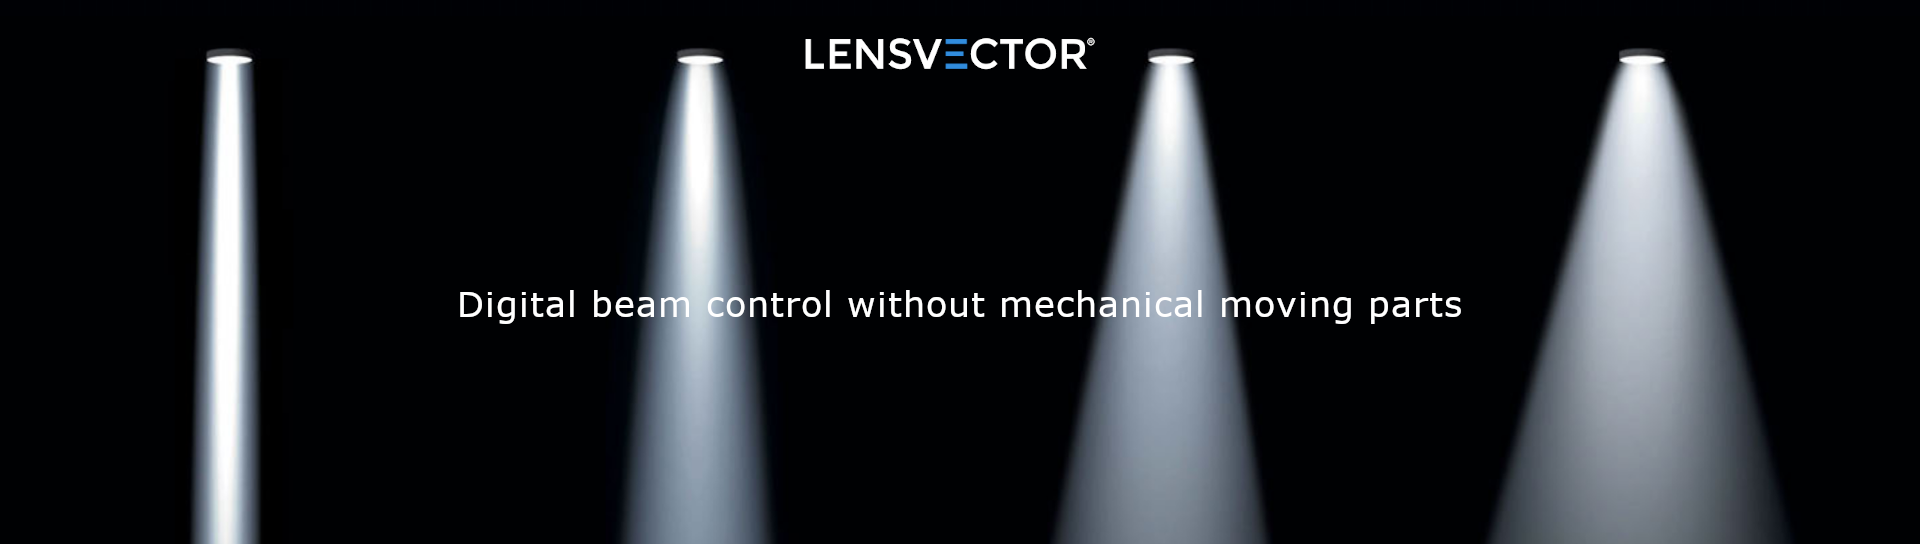 Digital control of the LED light beam using LensVector technology